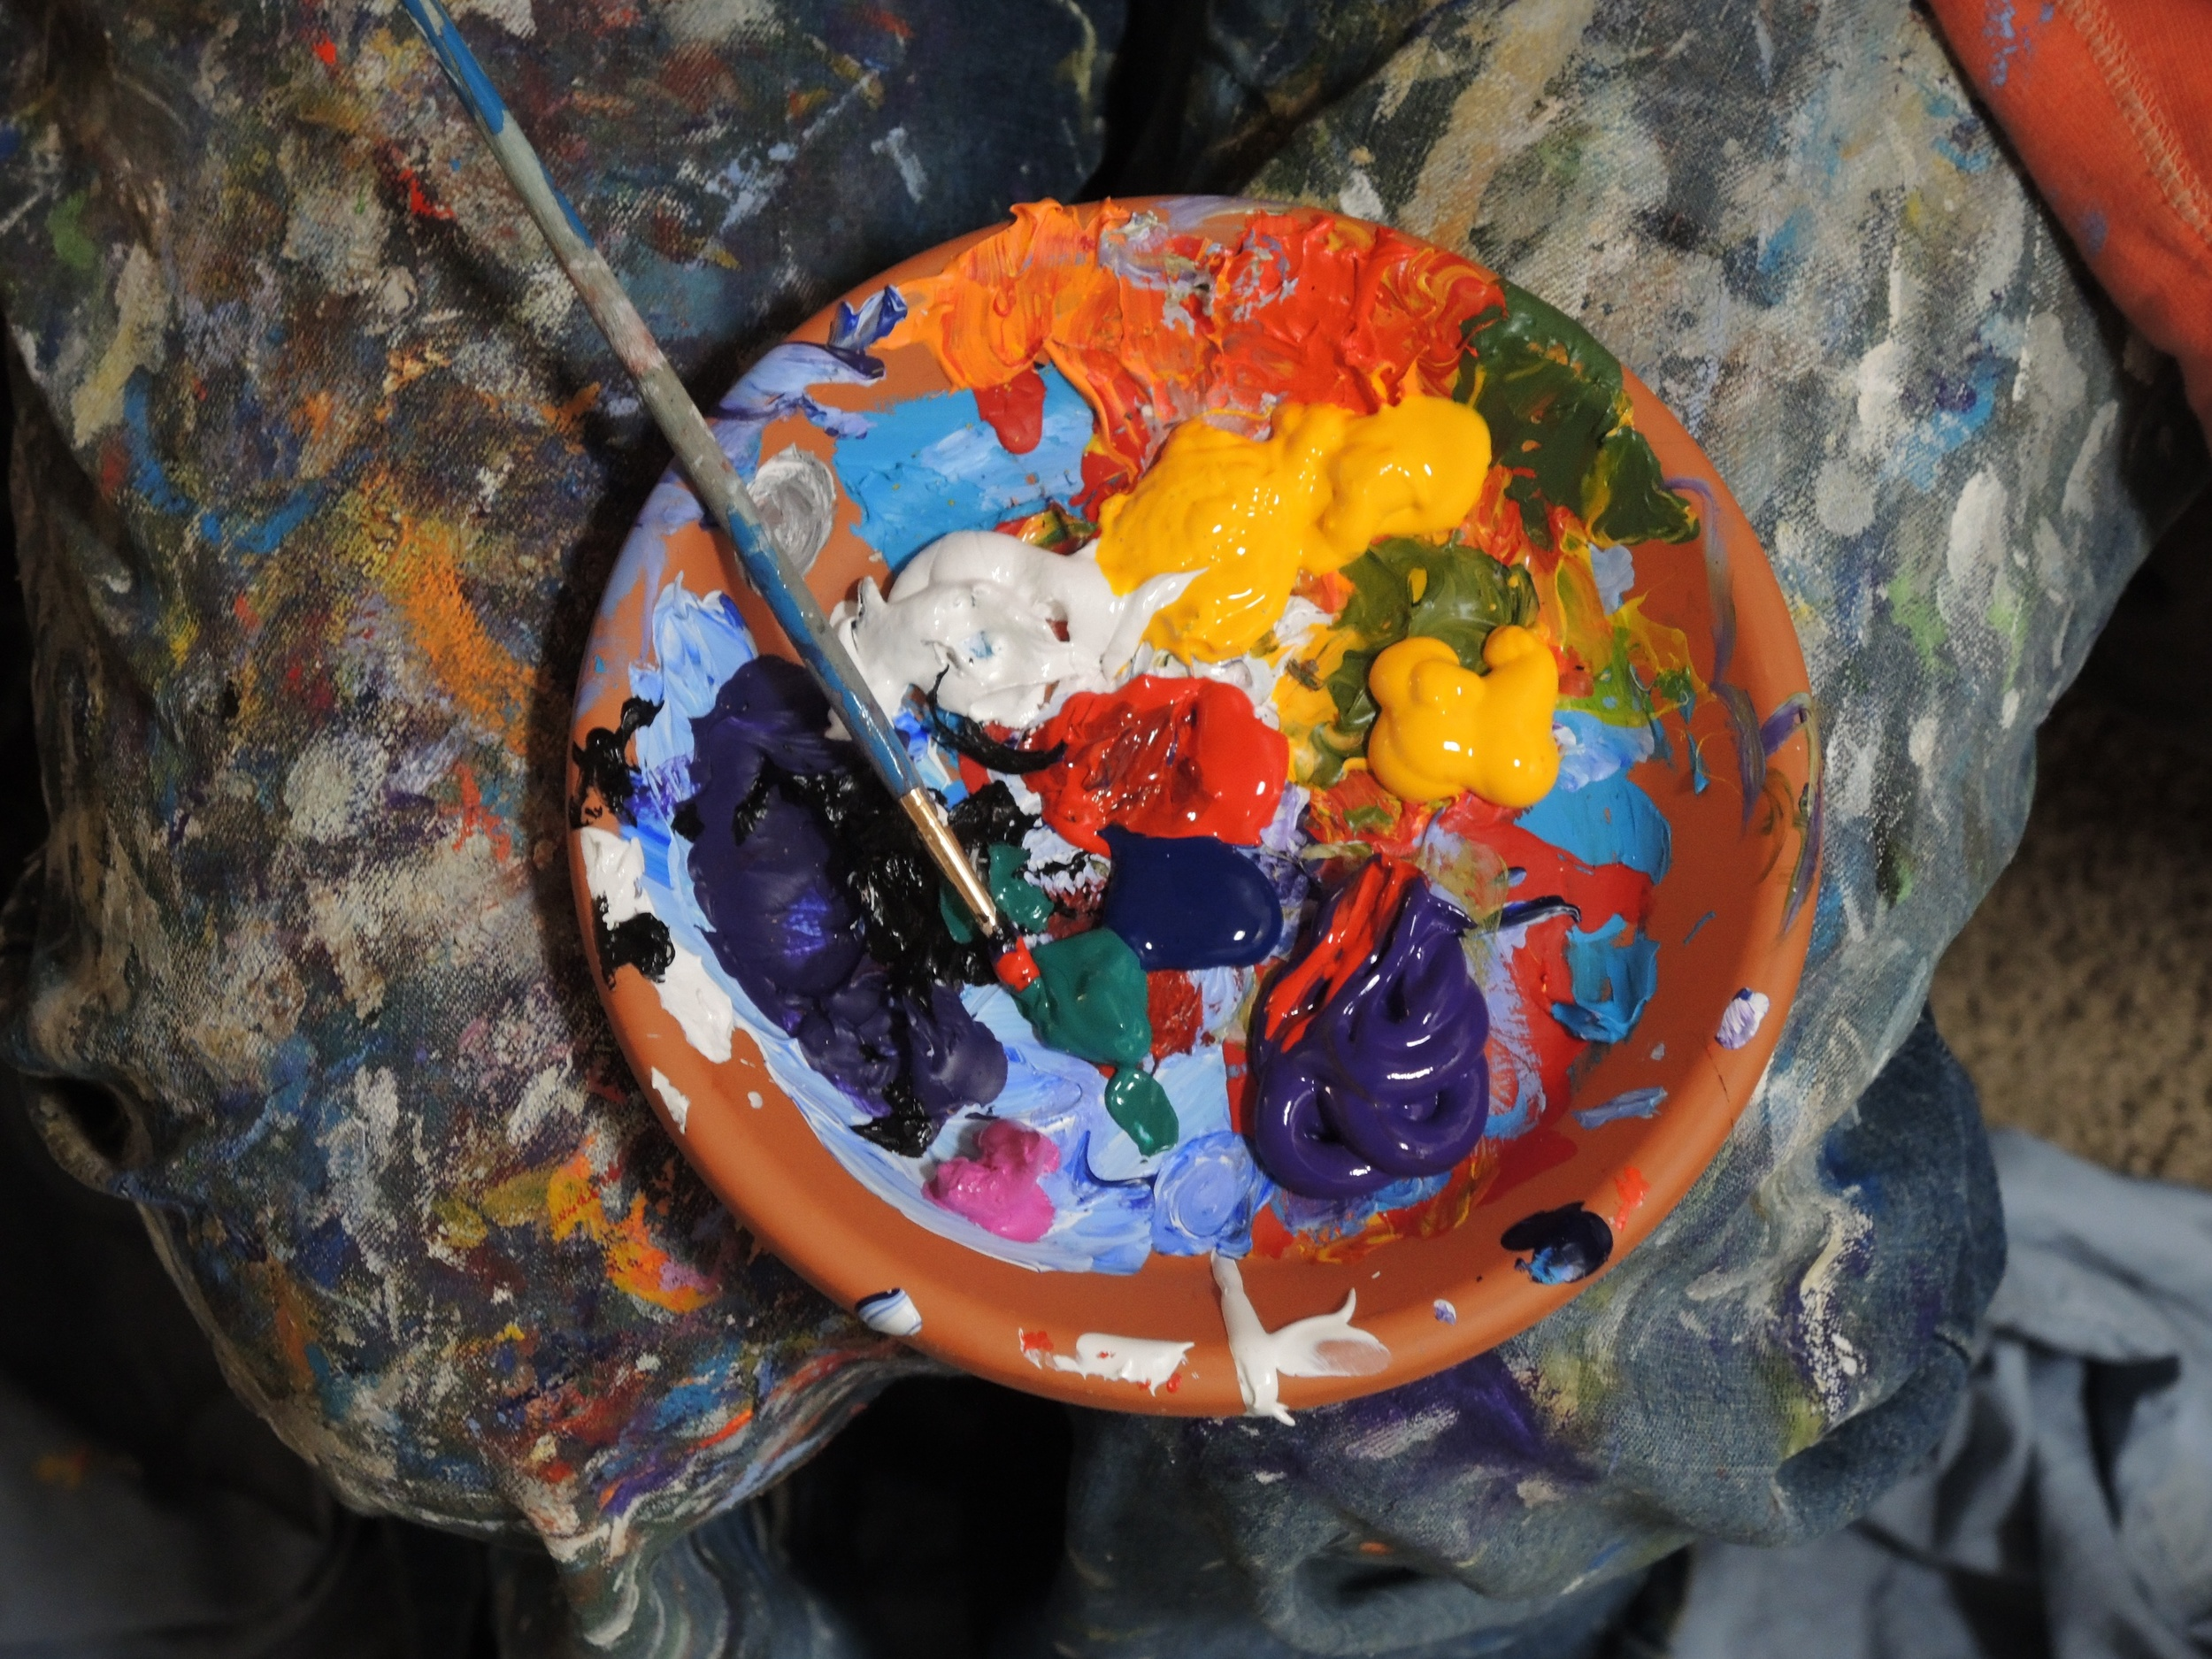 An artist's palette with various paint colors.